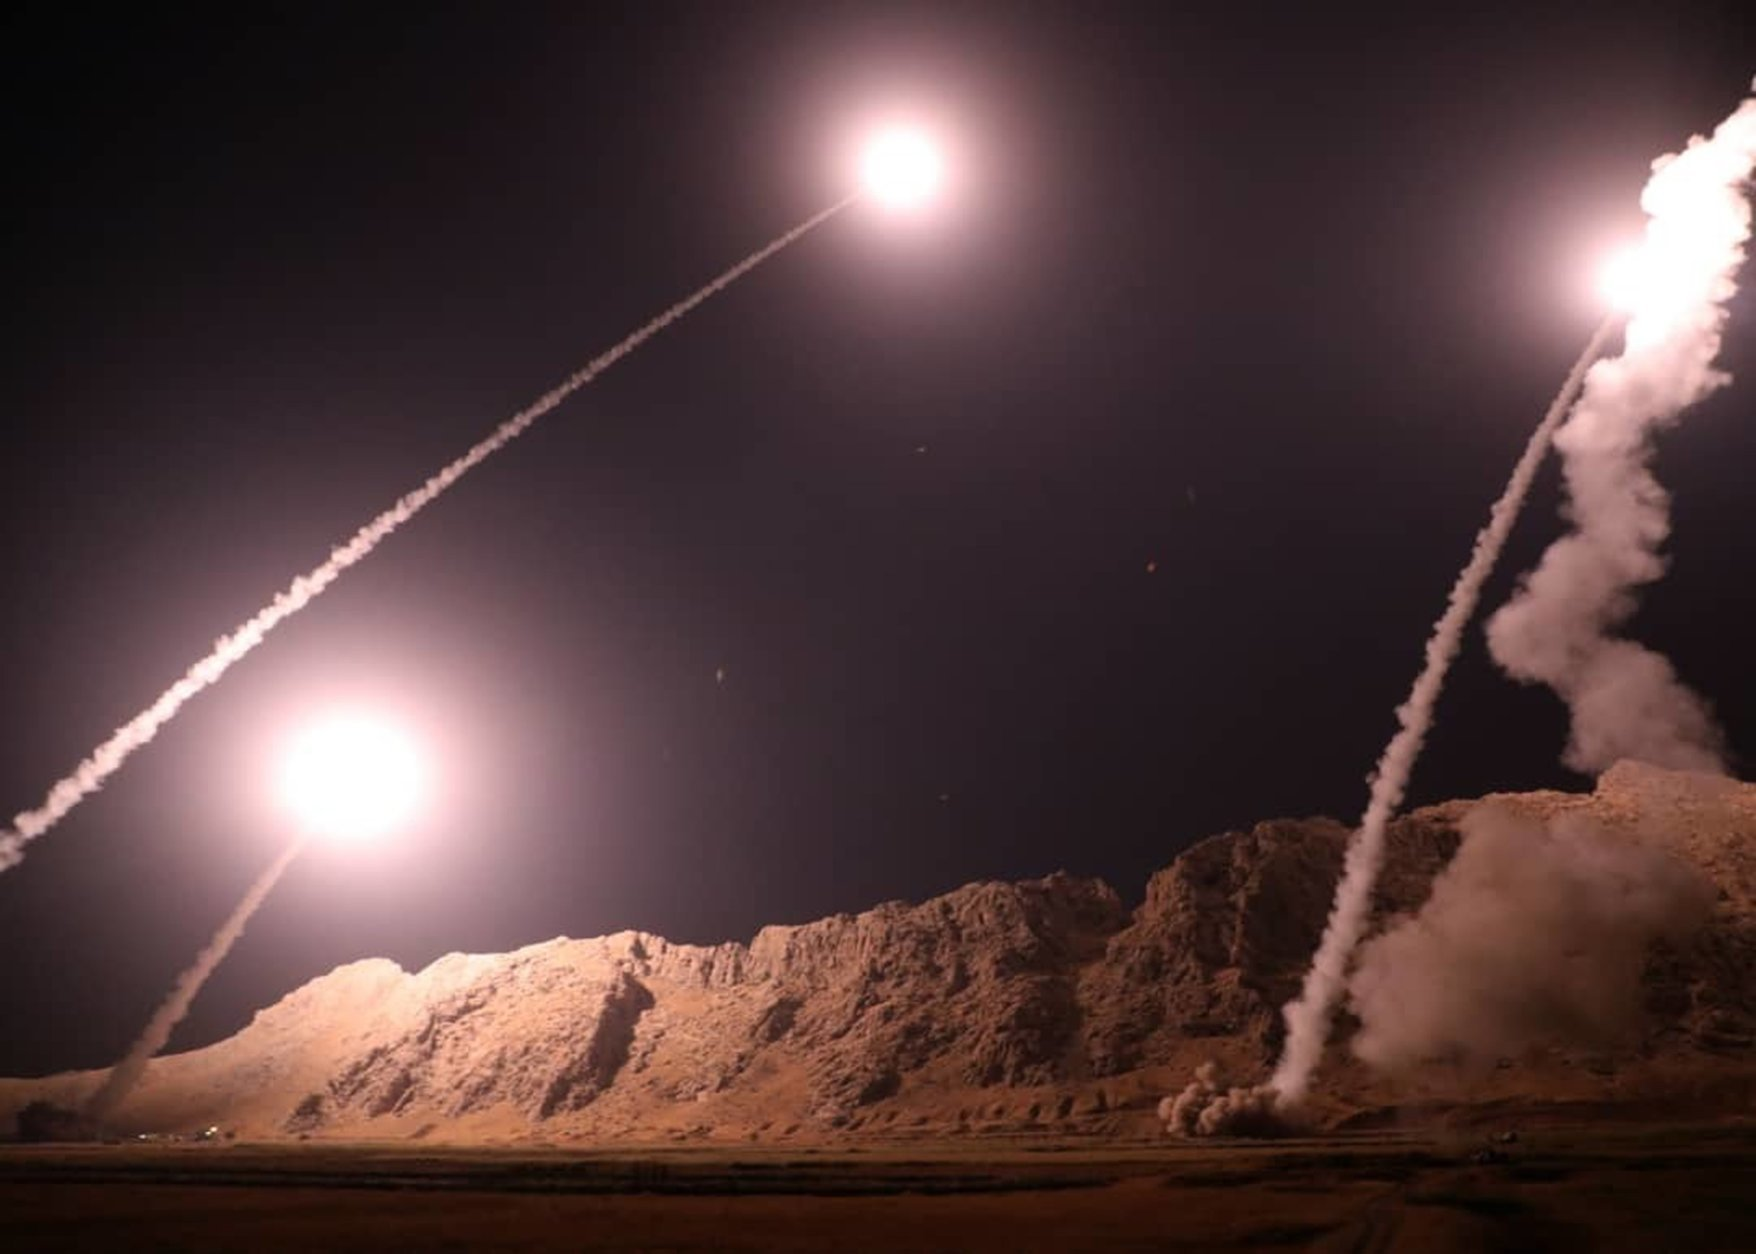 In this photo released by the Iranian Revolutionary Guard on Monday, Oct. 1, 2018, missiles are fired from the city of Kermanshah in western Iran targeting the Islamic State group in Syria. Iran's paramilitary Revolutionary Guard said Monday it launched ballistic missiles into eastern Syria targeting militants it blamed for a recent attack on a military parade. (Sepahnews via AP)